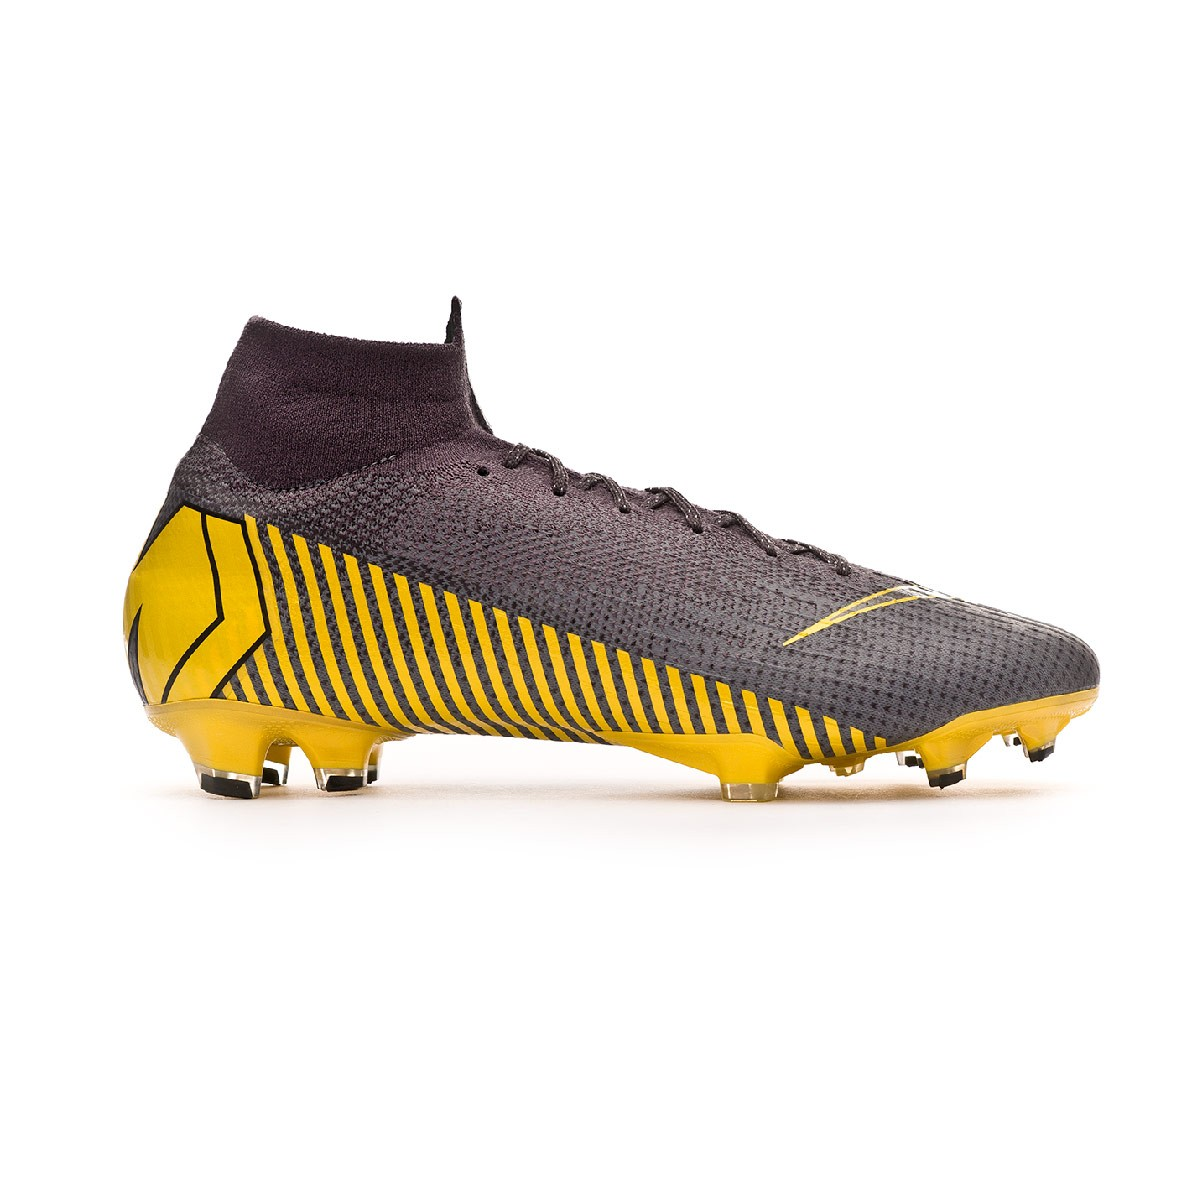 b6876a0f4 Football Boots Nike Mercurial Superfly VI Elite FG Thunder grey-Black-Dark  grey - Football store Fútbol Emotion